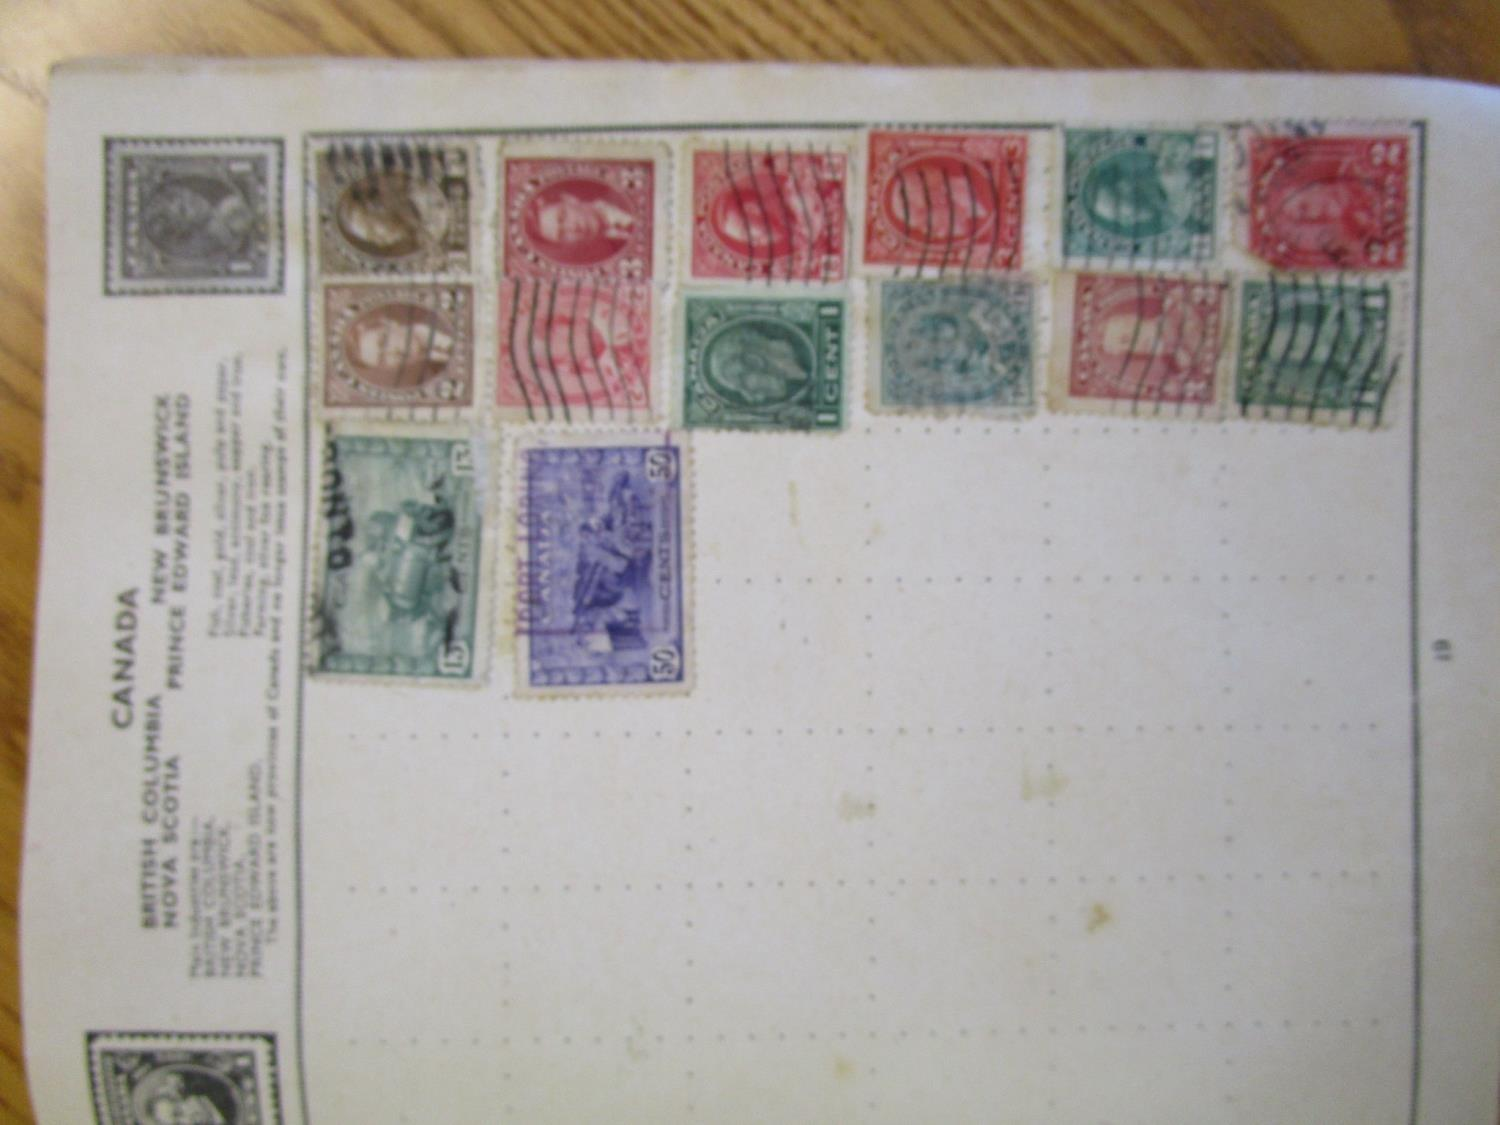 Mixed stamps from around the world mounted in albums and loose to include Victorian Penny Reds, - Image 9 of 18